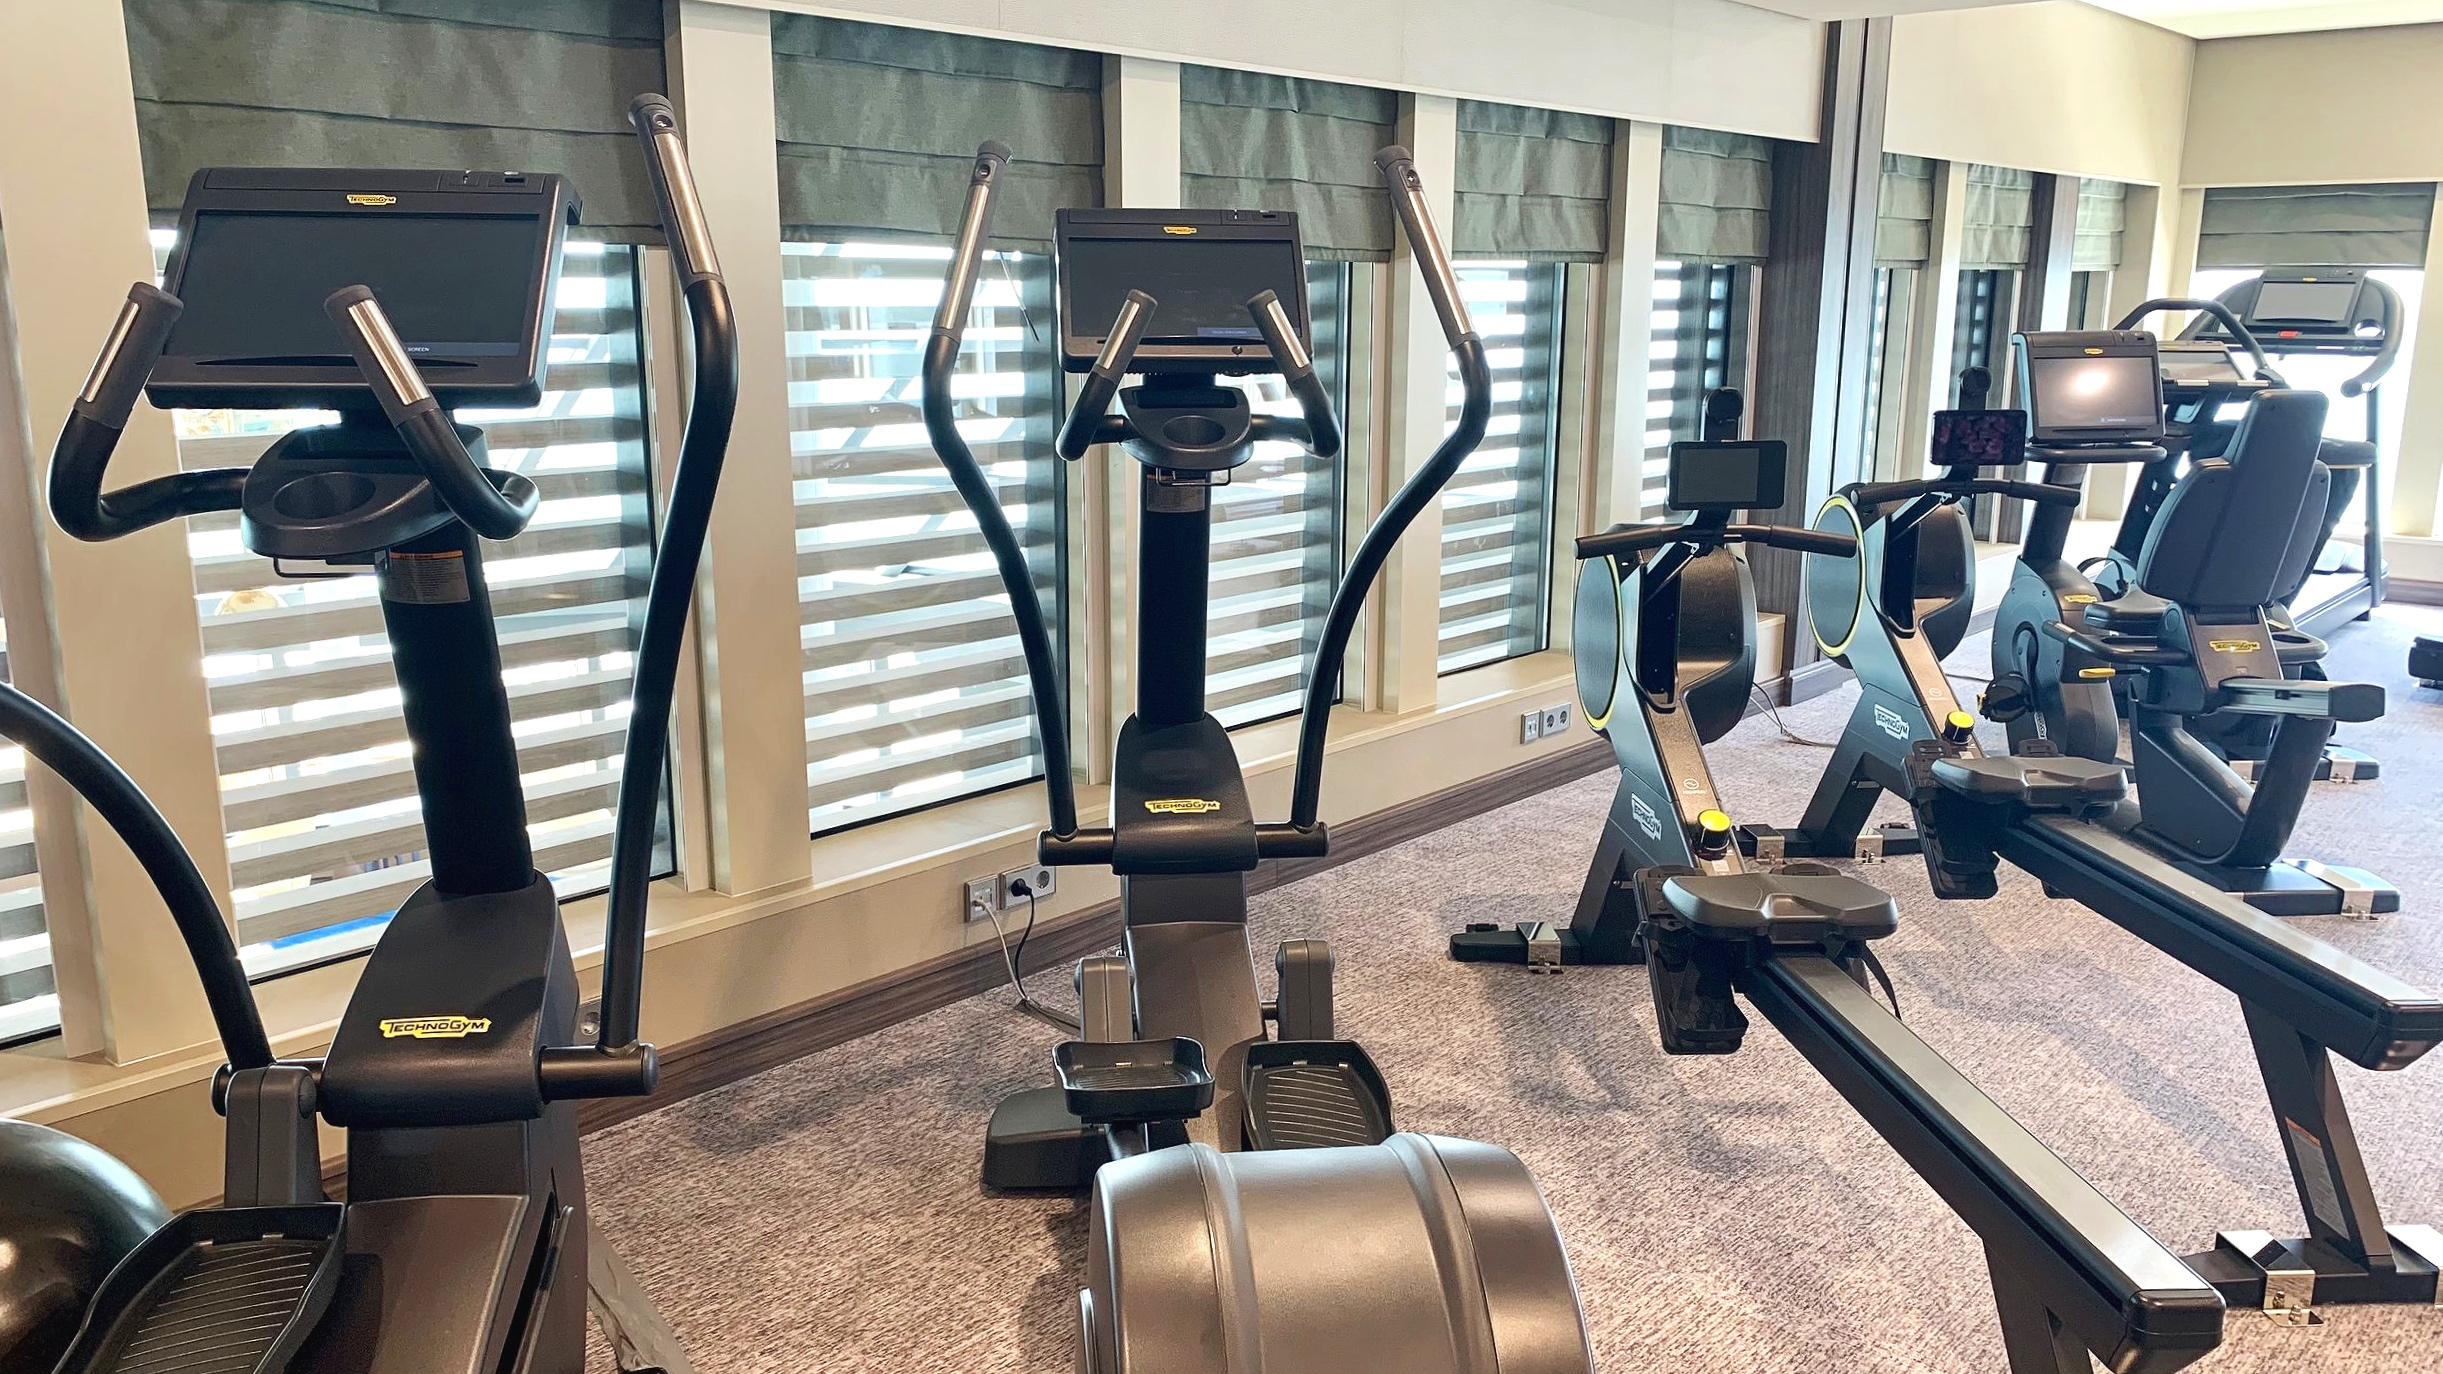 The aerobic equipment is varied and plentiful.